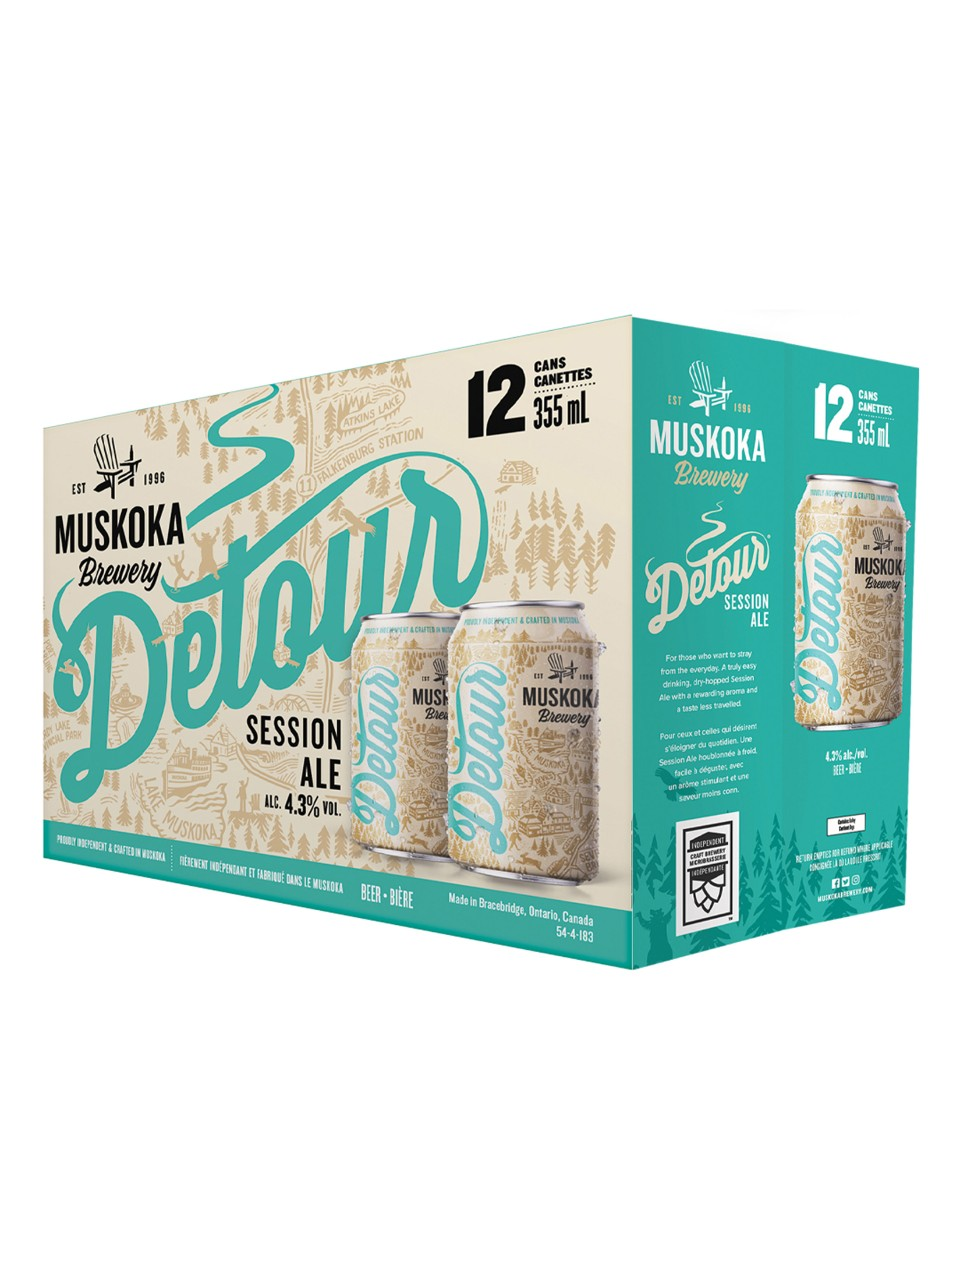 Image for Muskoka Detour from LCBO